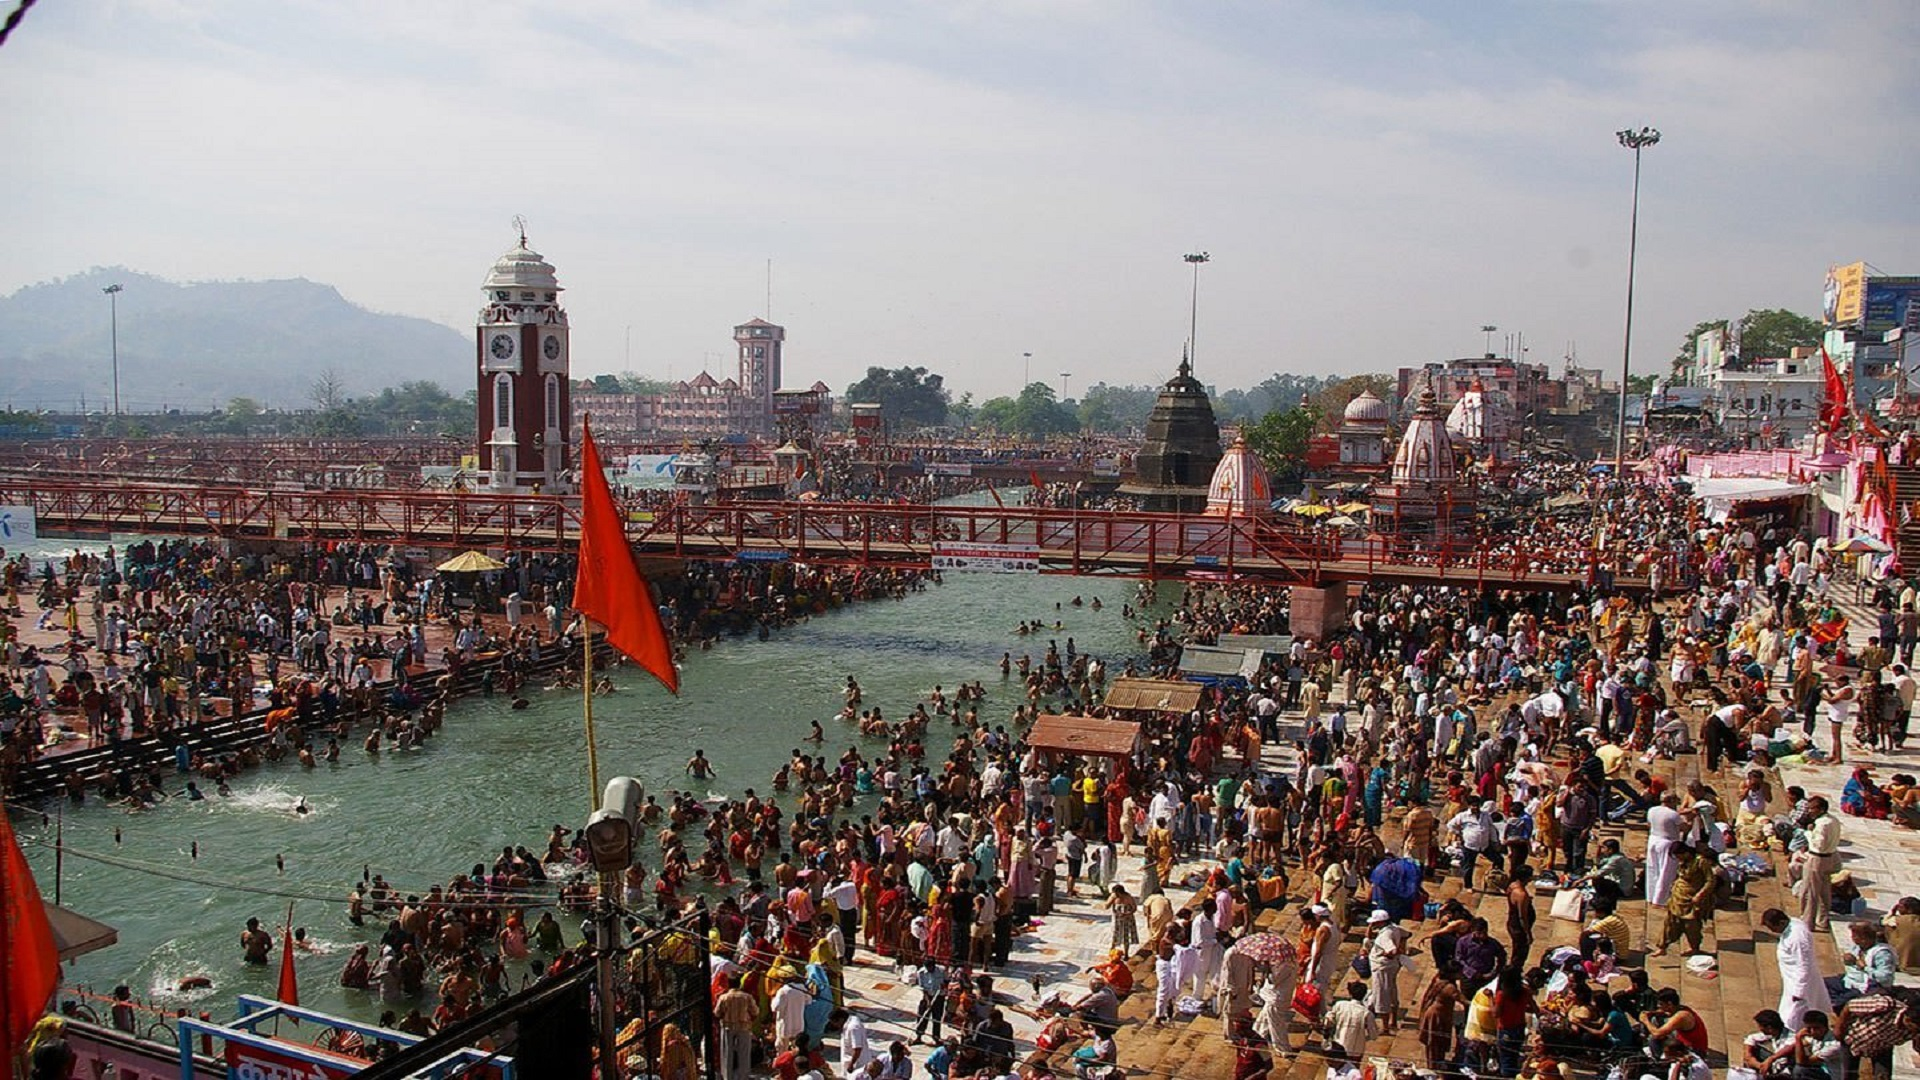 """Kumbh Mela (the festival of the sacred Pitcher) is the largest peaceful congregation of pilgrims on earth"""